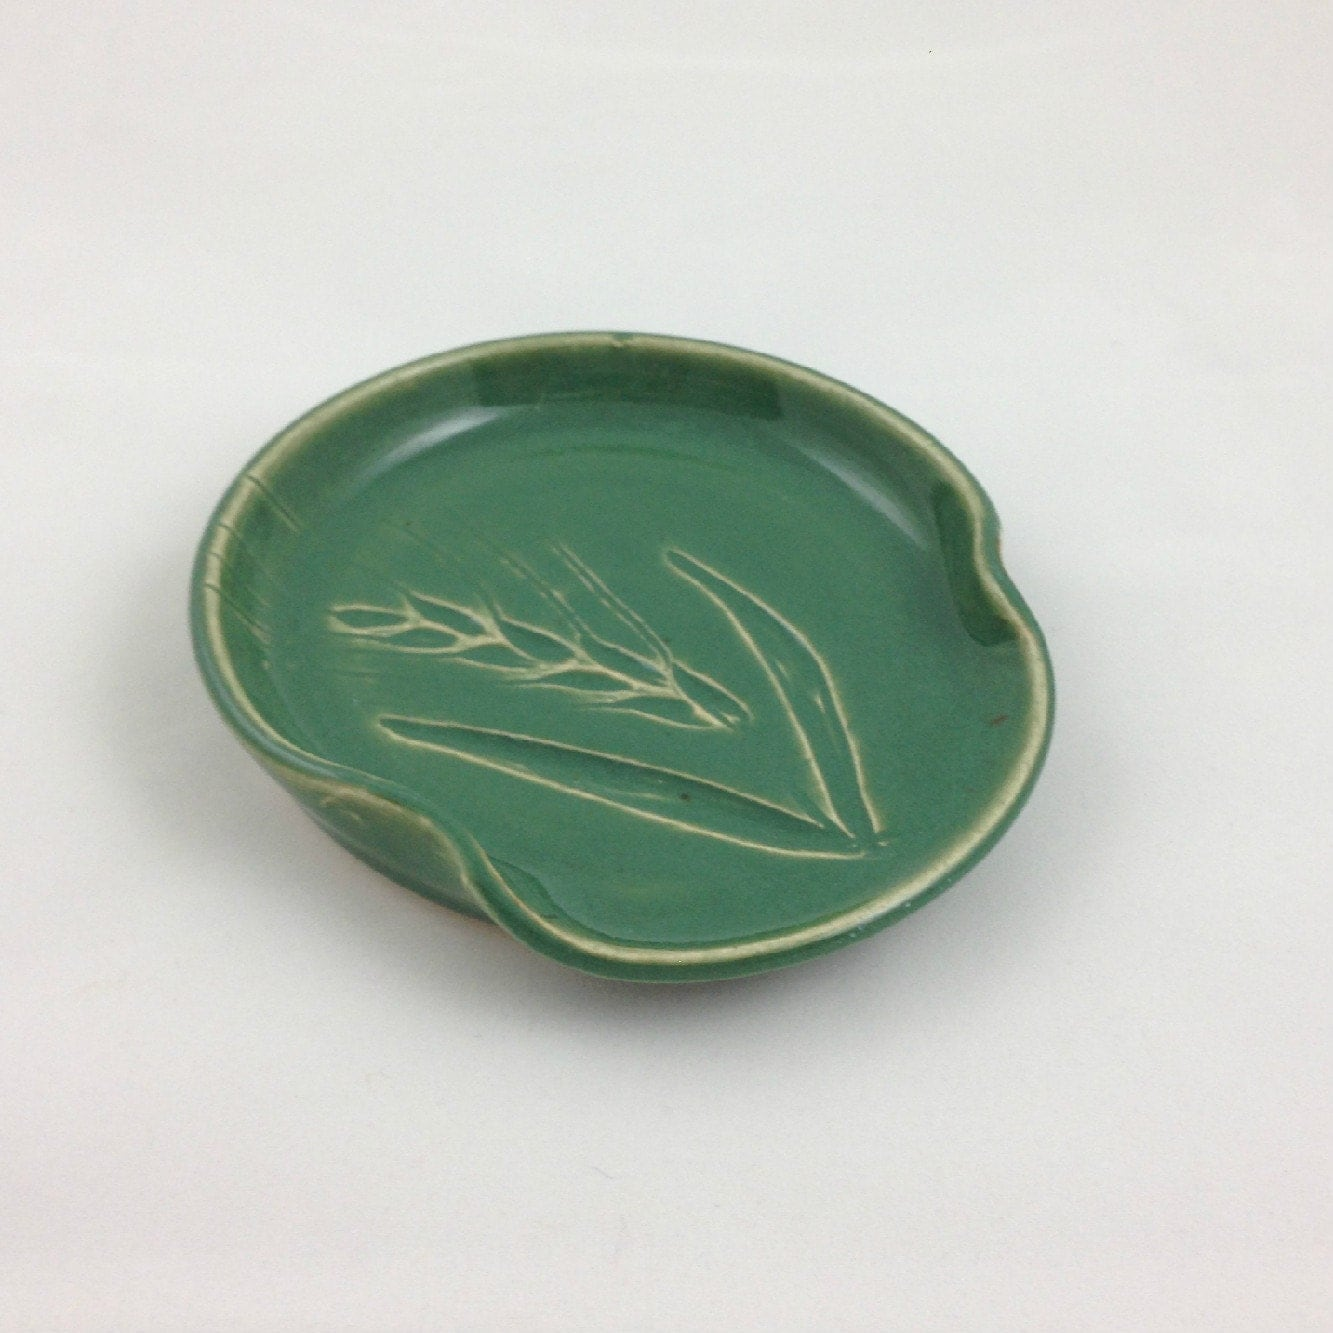 Wheat Spoon Rest Spring Green Pottery Handmade by Daisy Friesen